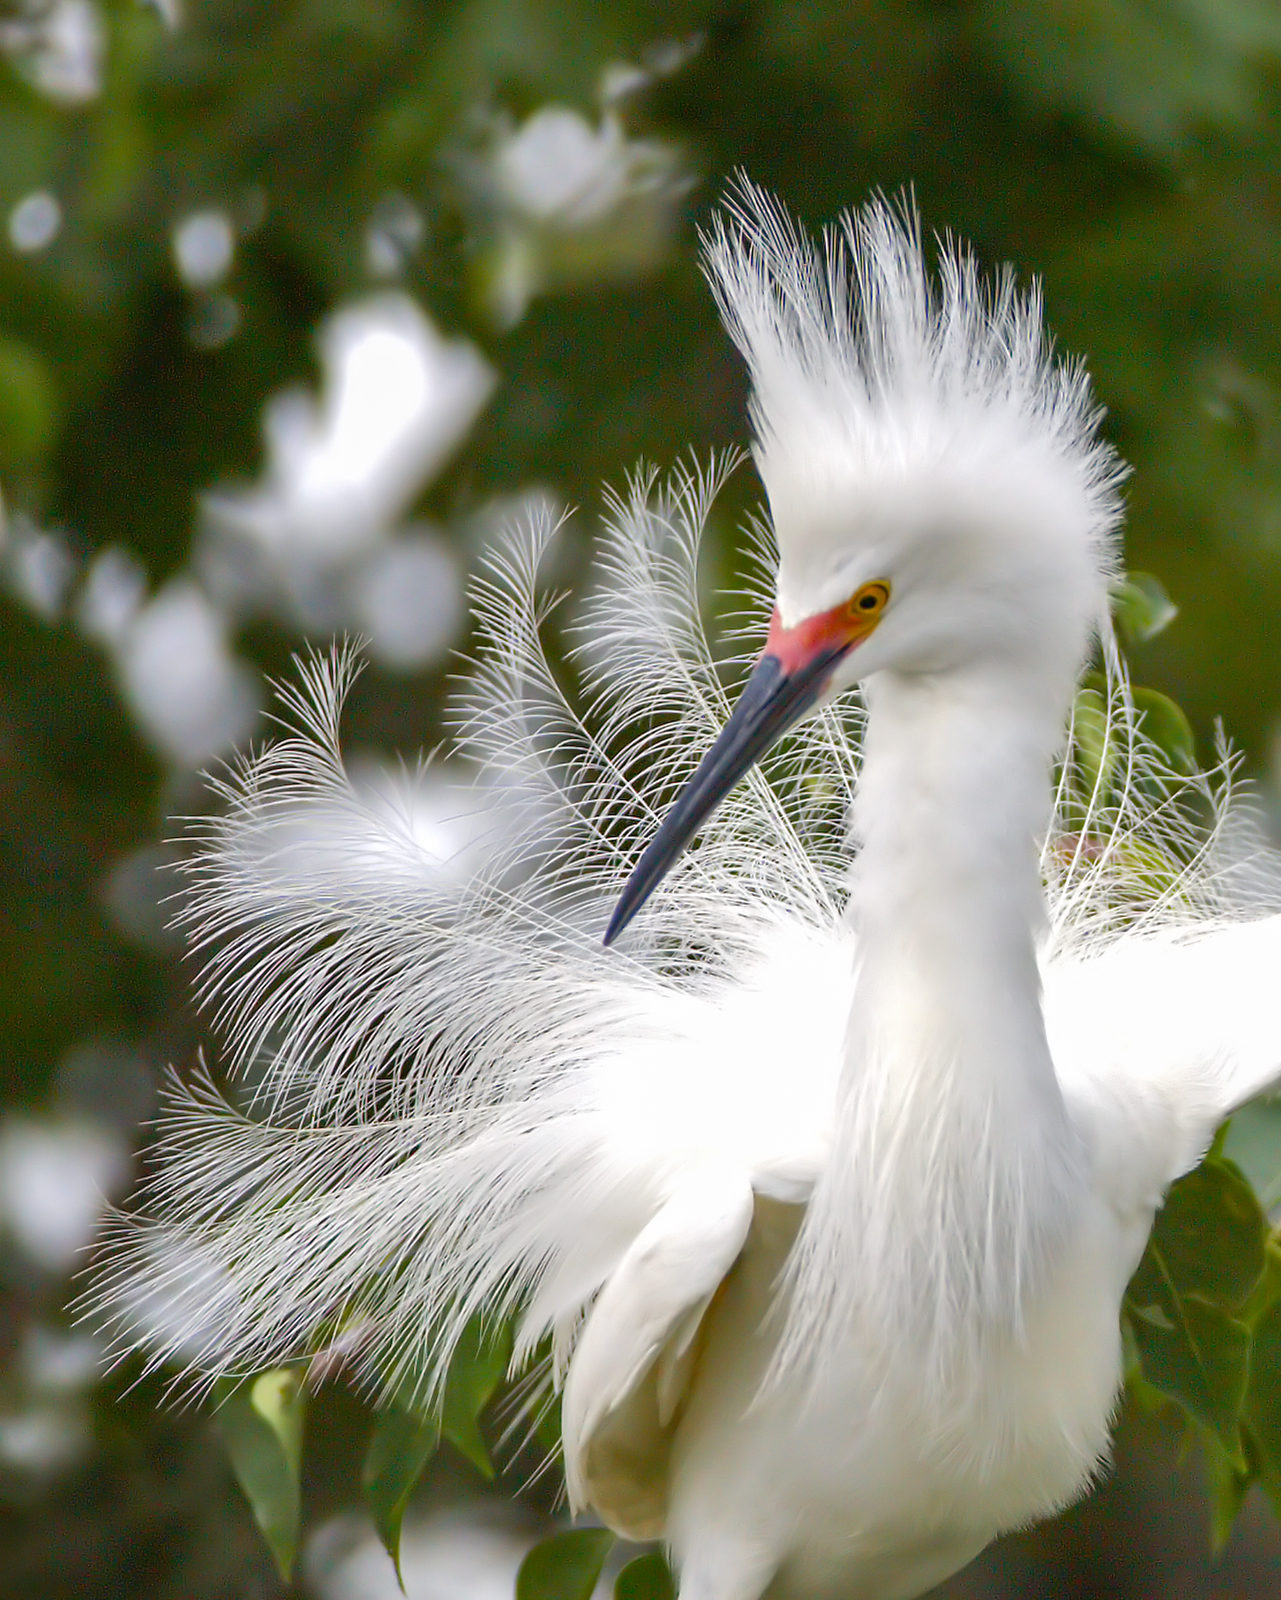 snowy egret during mating season at Rip's Rookery on Jefferson Island in New Iberia, Louisiana